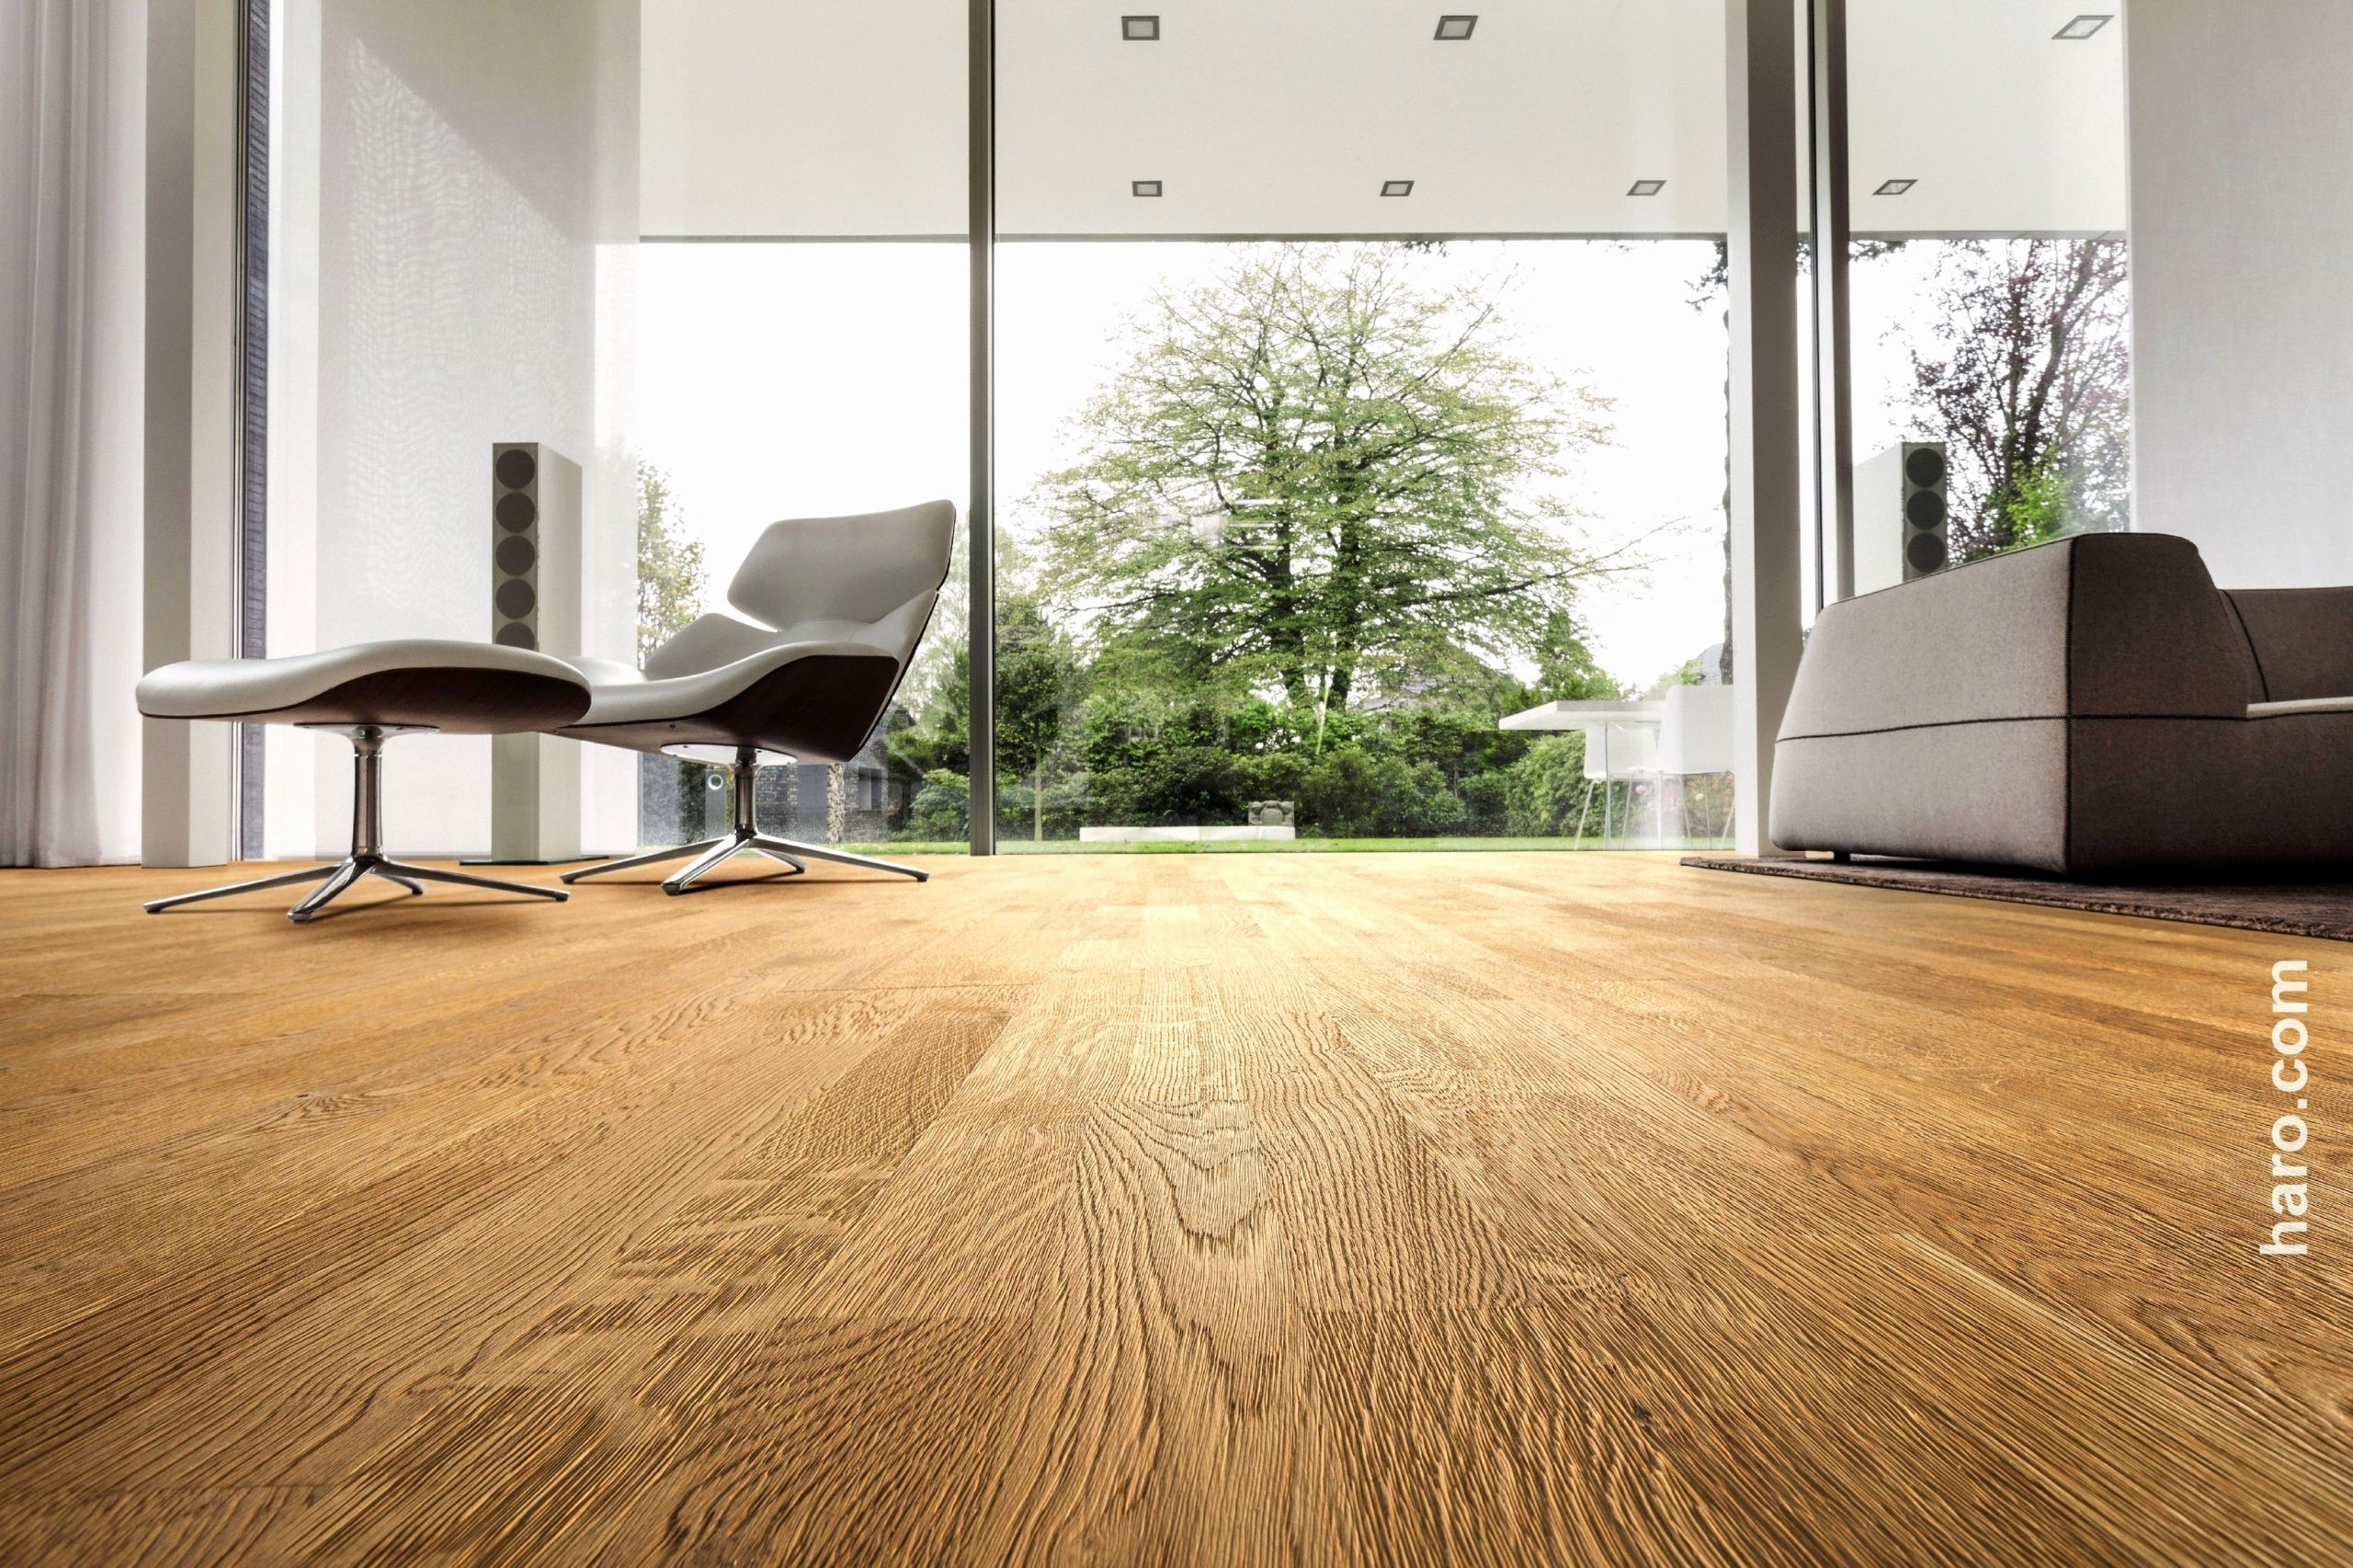 best on hardwood flooring of clearance hardwood flooring 50 inspirational vinyl plank flooring throughout terrassen bodenbelag schac2b6n feinsteinzeug terrasse 0d archives new das beste